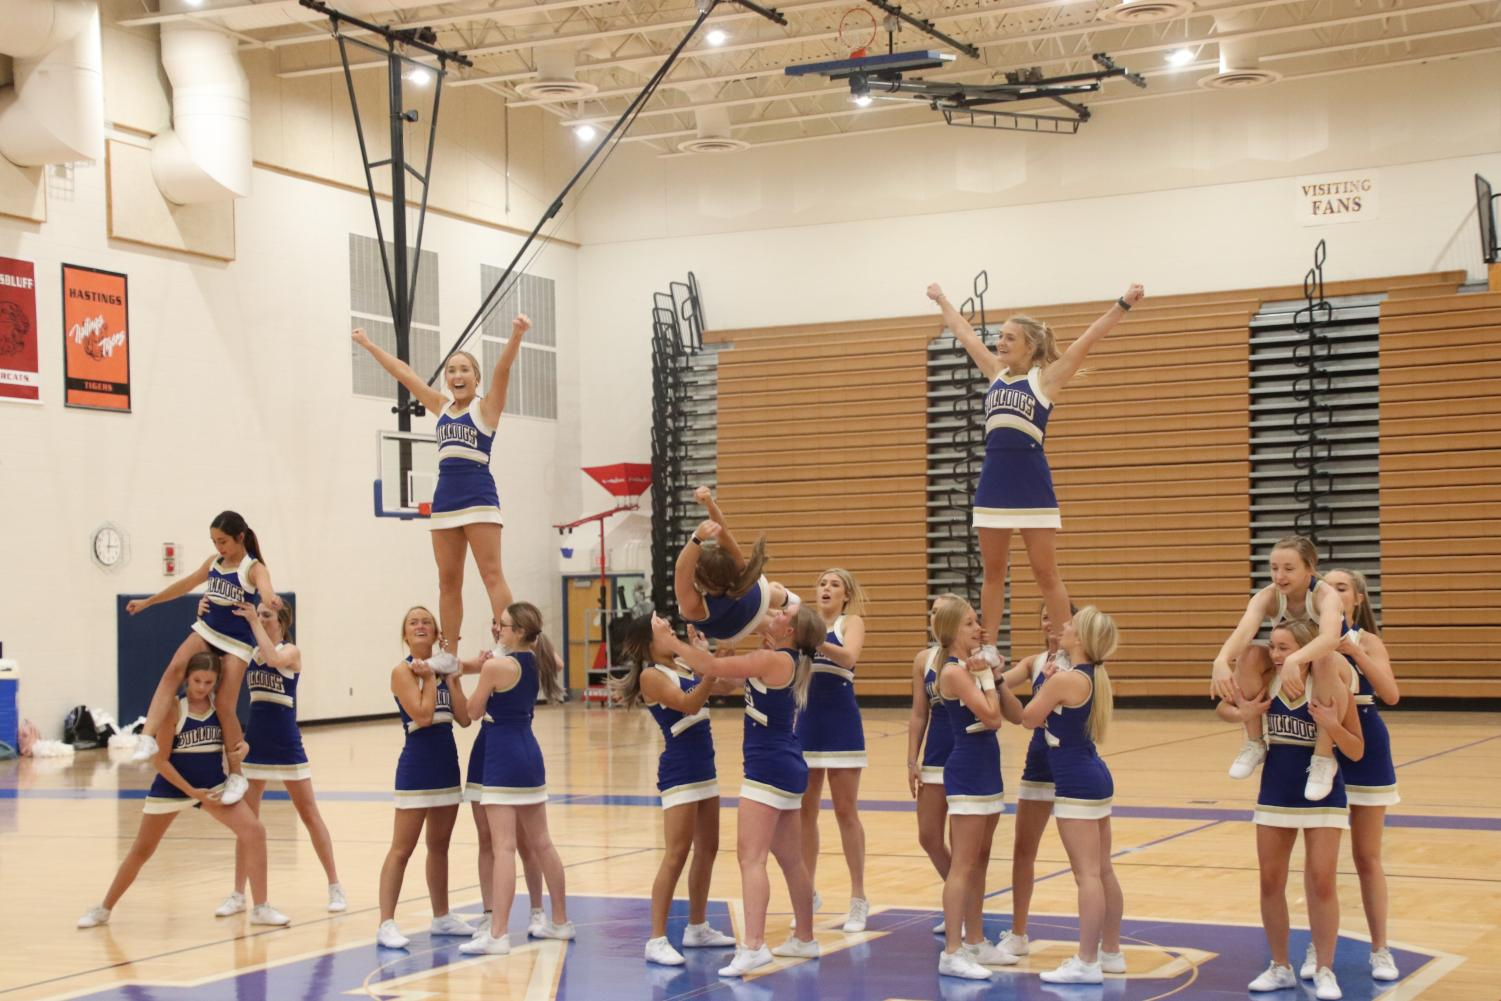 The+new+cheerleaders+performed+for+the+first+time+at+Friday%E2%80%99s+pep+rally.+Freshman+cheerleader+Avery+Bergeron+is+one+of+the+new+cheerleaders%2C+%E2%80%9CIt%E2%80%99s+like+our+first+time+in+front+of+a+big+crowd%2C+so+we+were+nervous%2C%E2%80%9D+Bergeron+said%2C+%E2%80%9CIt+went+great%2C+I+could+do+it+again%2C+I%E2%80%99m+excited+to+perform+again.%E2%80%9D